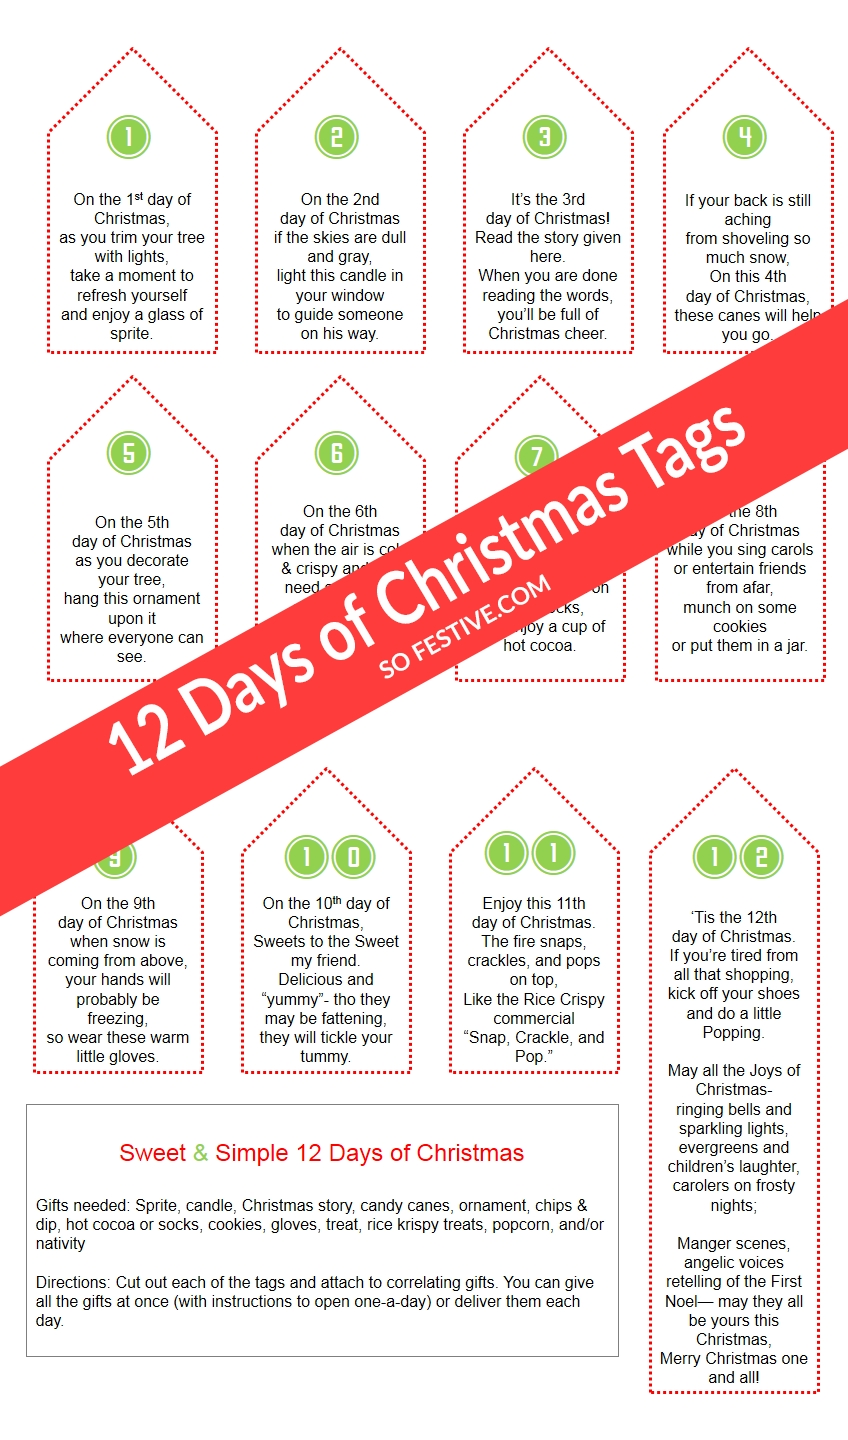 10 Pretty 12 Days Of Christmas Ideas For Kids sweet simple 12 days of christmas printables so festive 2 2020